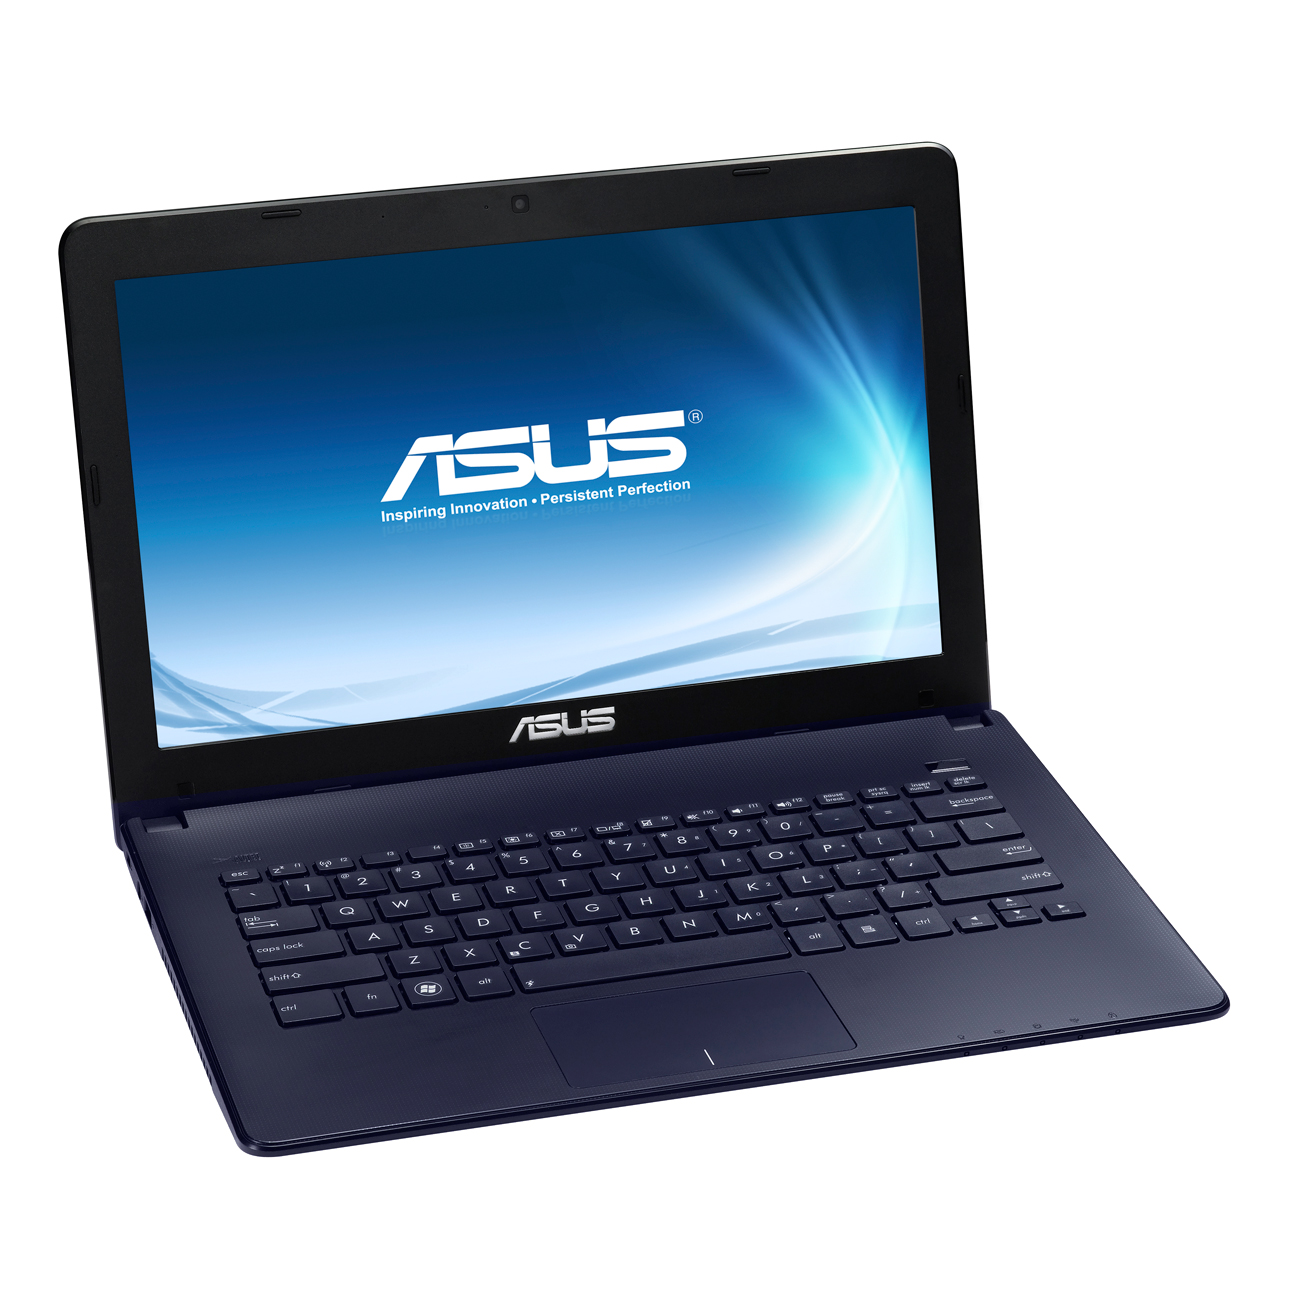 "PC portable ASUS F301A-RX073V Intel Pentium B970 4 Go 500 Go 13.3"" LED Wi-Fi N Webcam Windows 7 Premium 64 bits (garantie constructeur 1 an)"